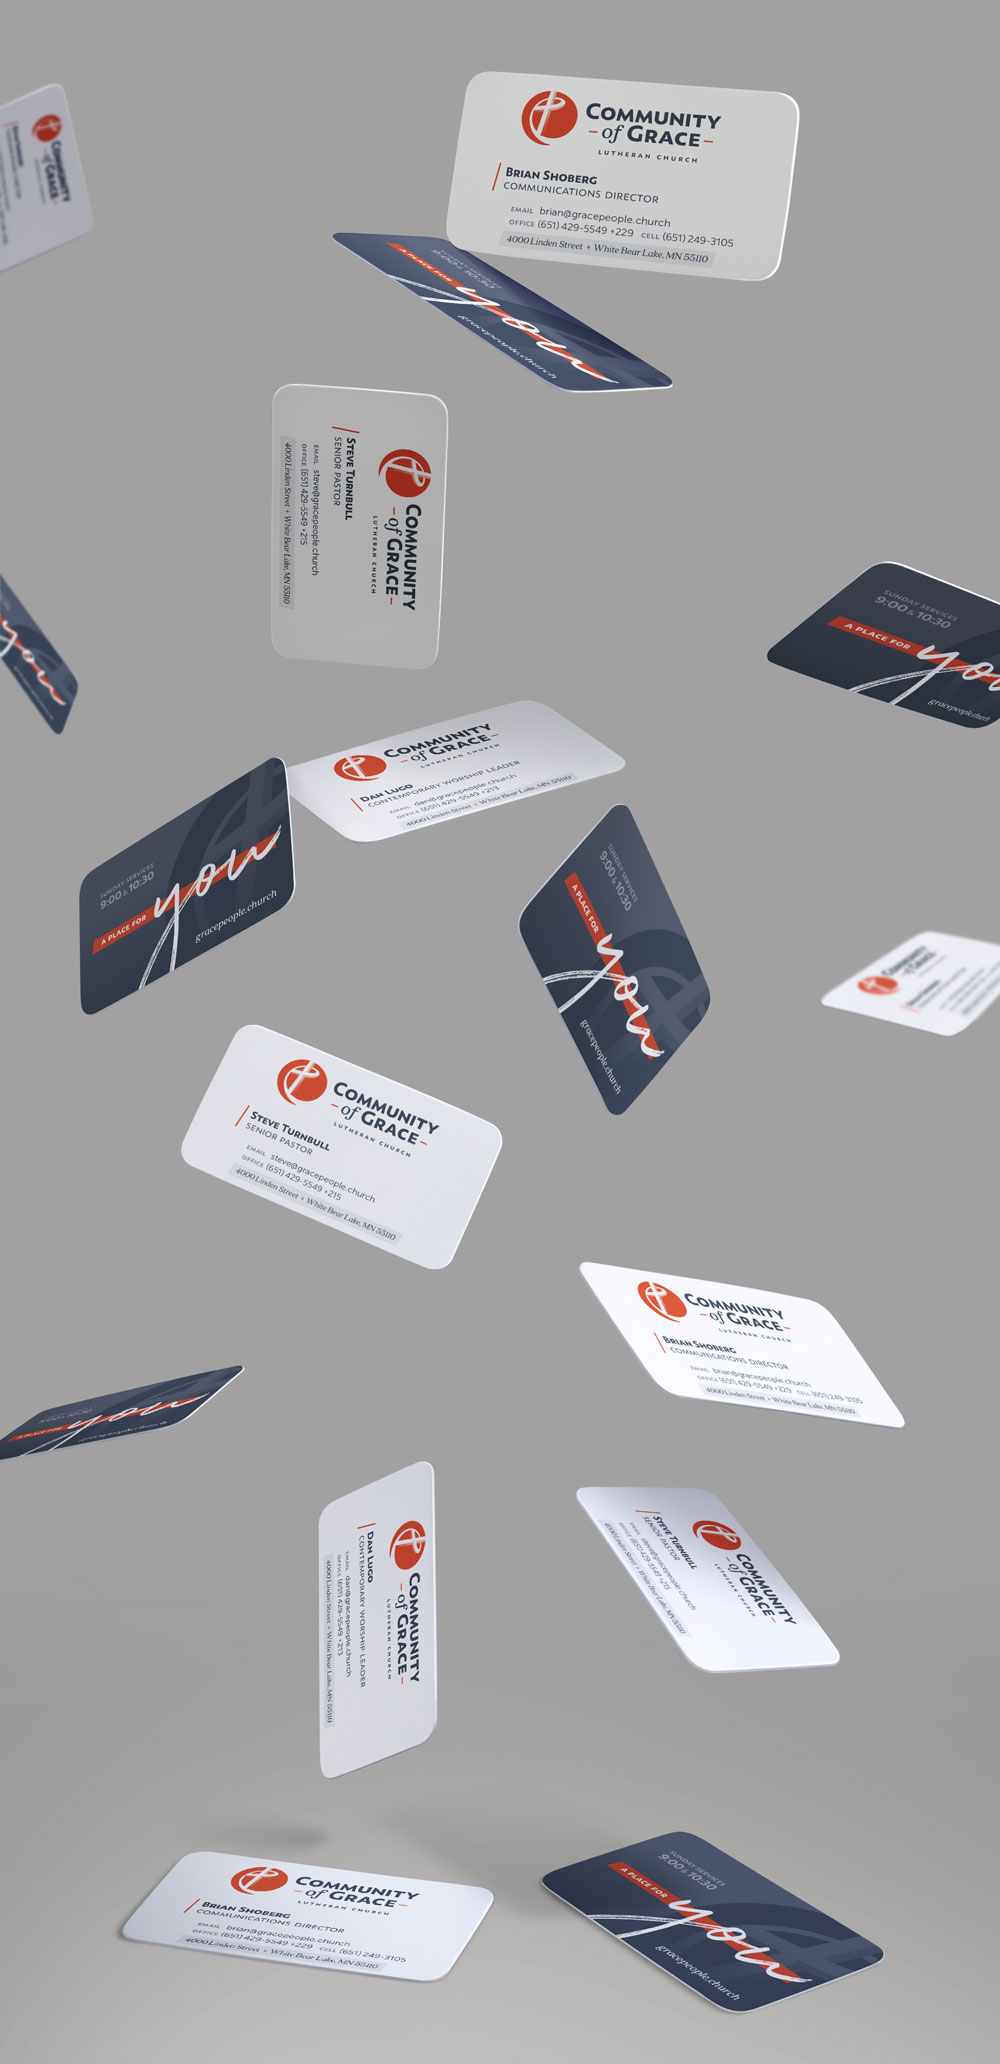 Community of Grace business card design by Jeff Miller, HellothisisJeff Design